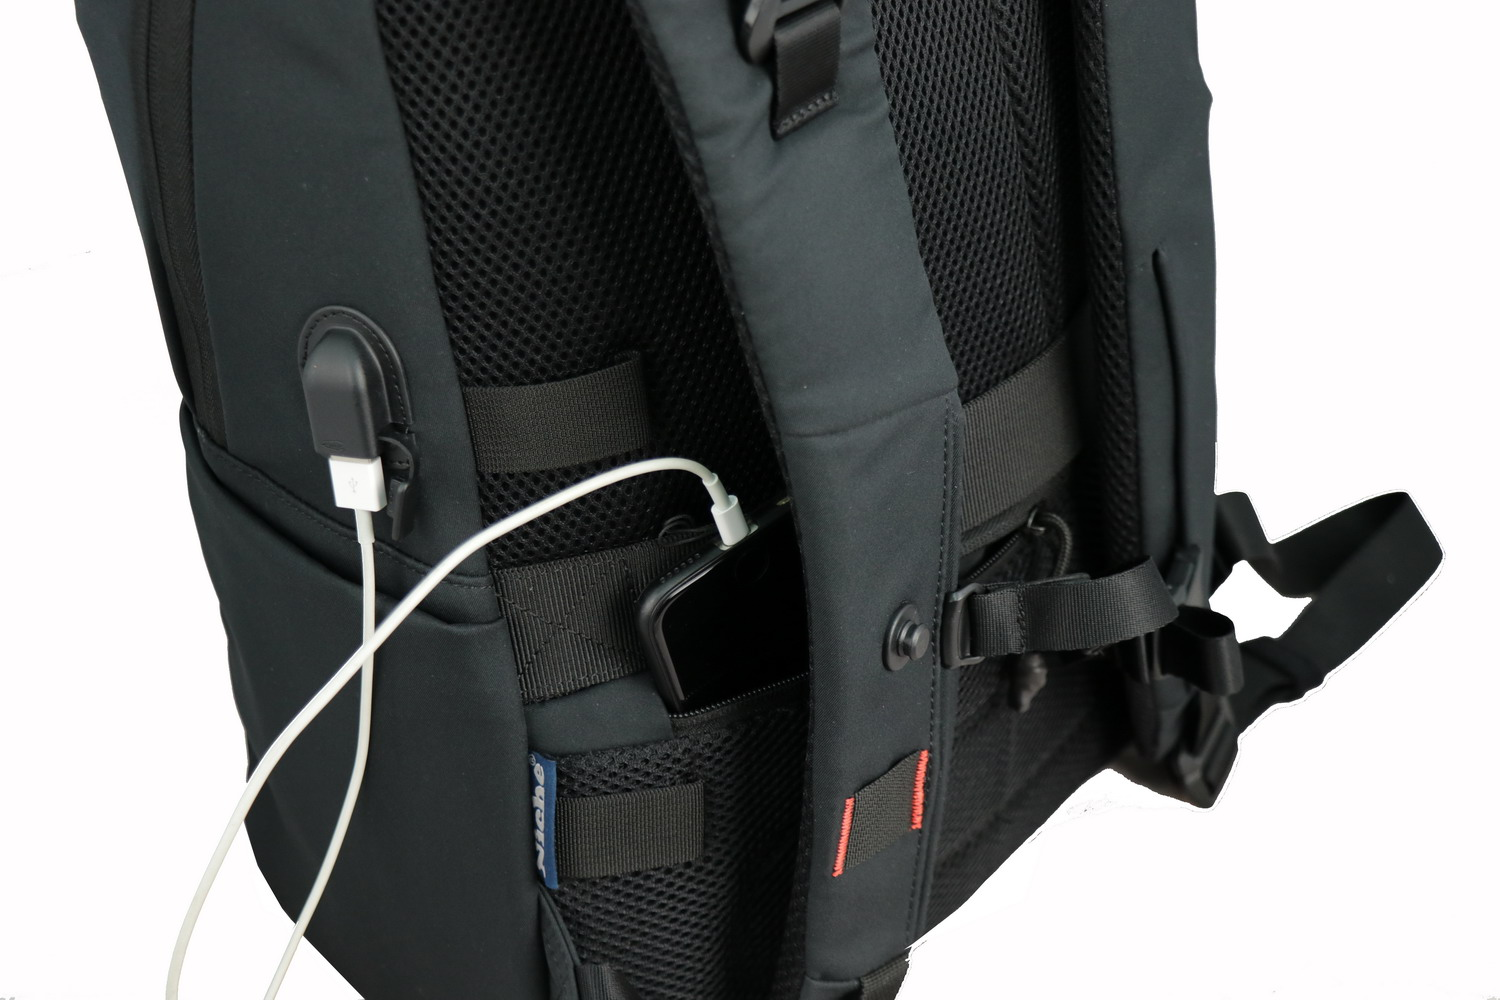 Niche backpack with USB charger